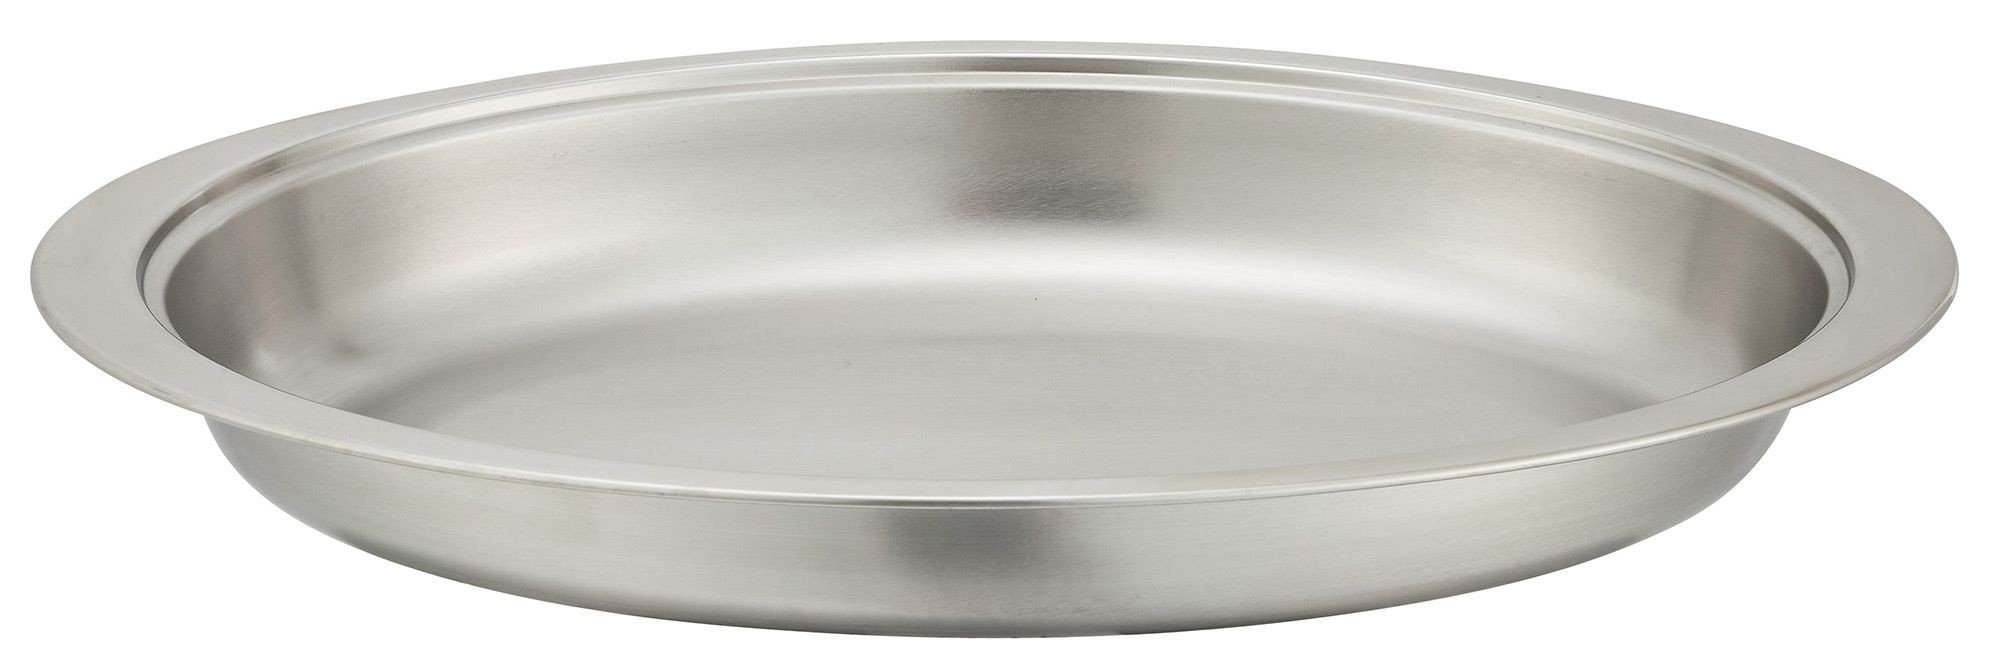 Food Pan for 6 Qt. Gold-Accented Malibu Oval Chafer (Model 202)